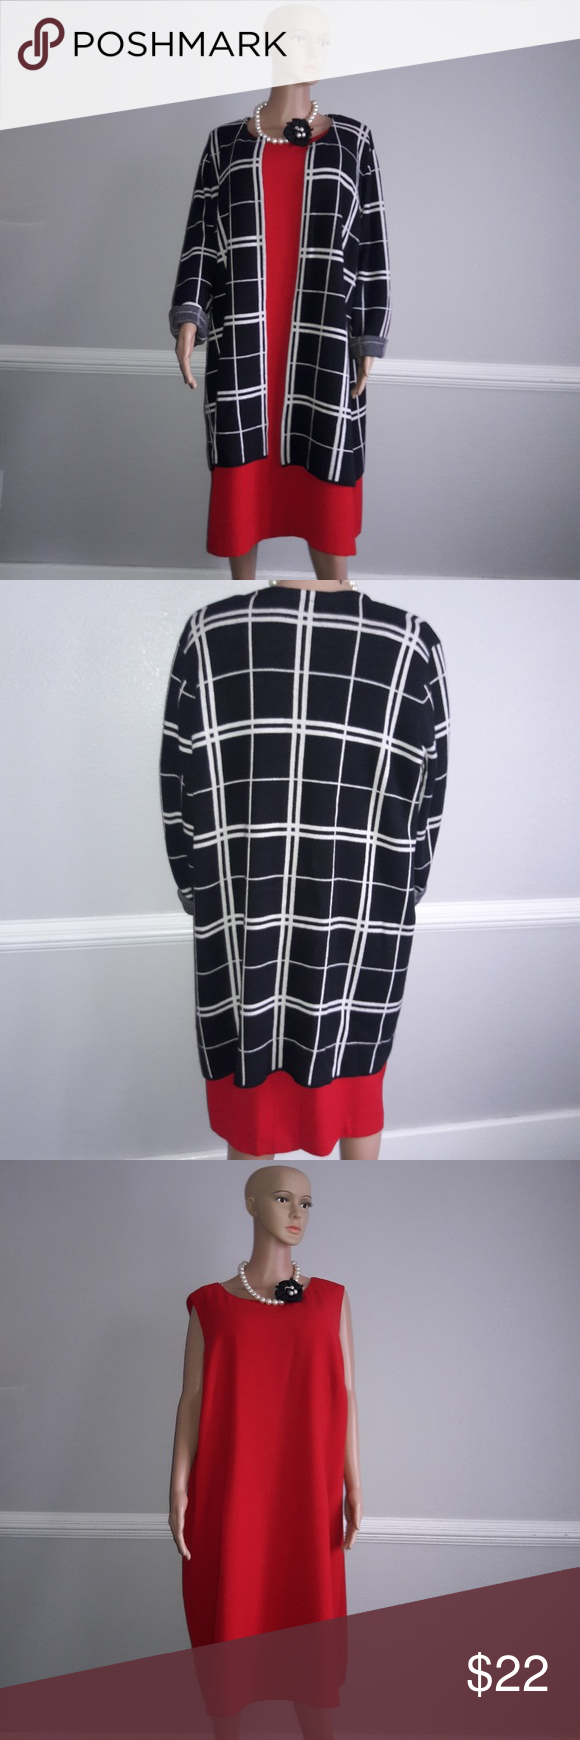 b1b5854fc8da Outfit   Cardigan + dress  1 price Perfect for the office or Church  CARDIGAN SIZE